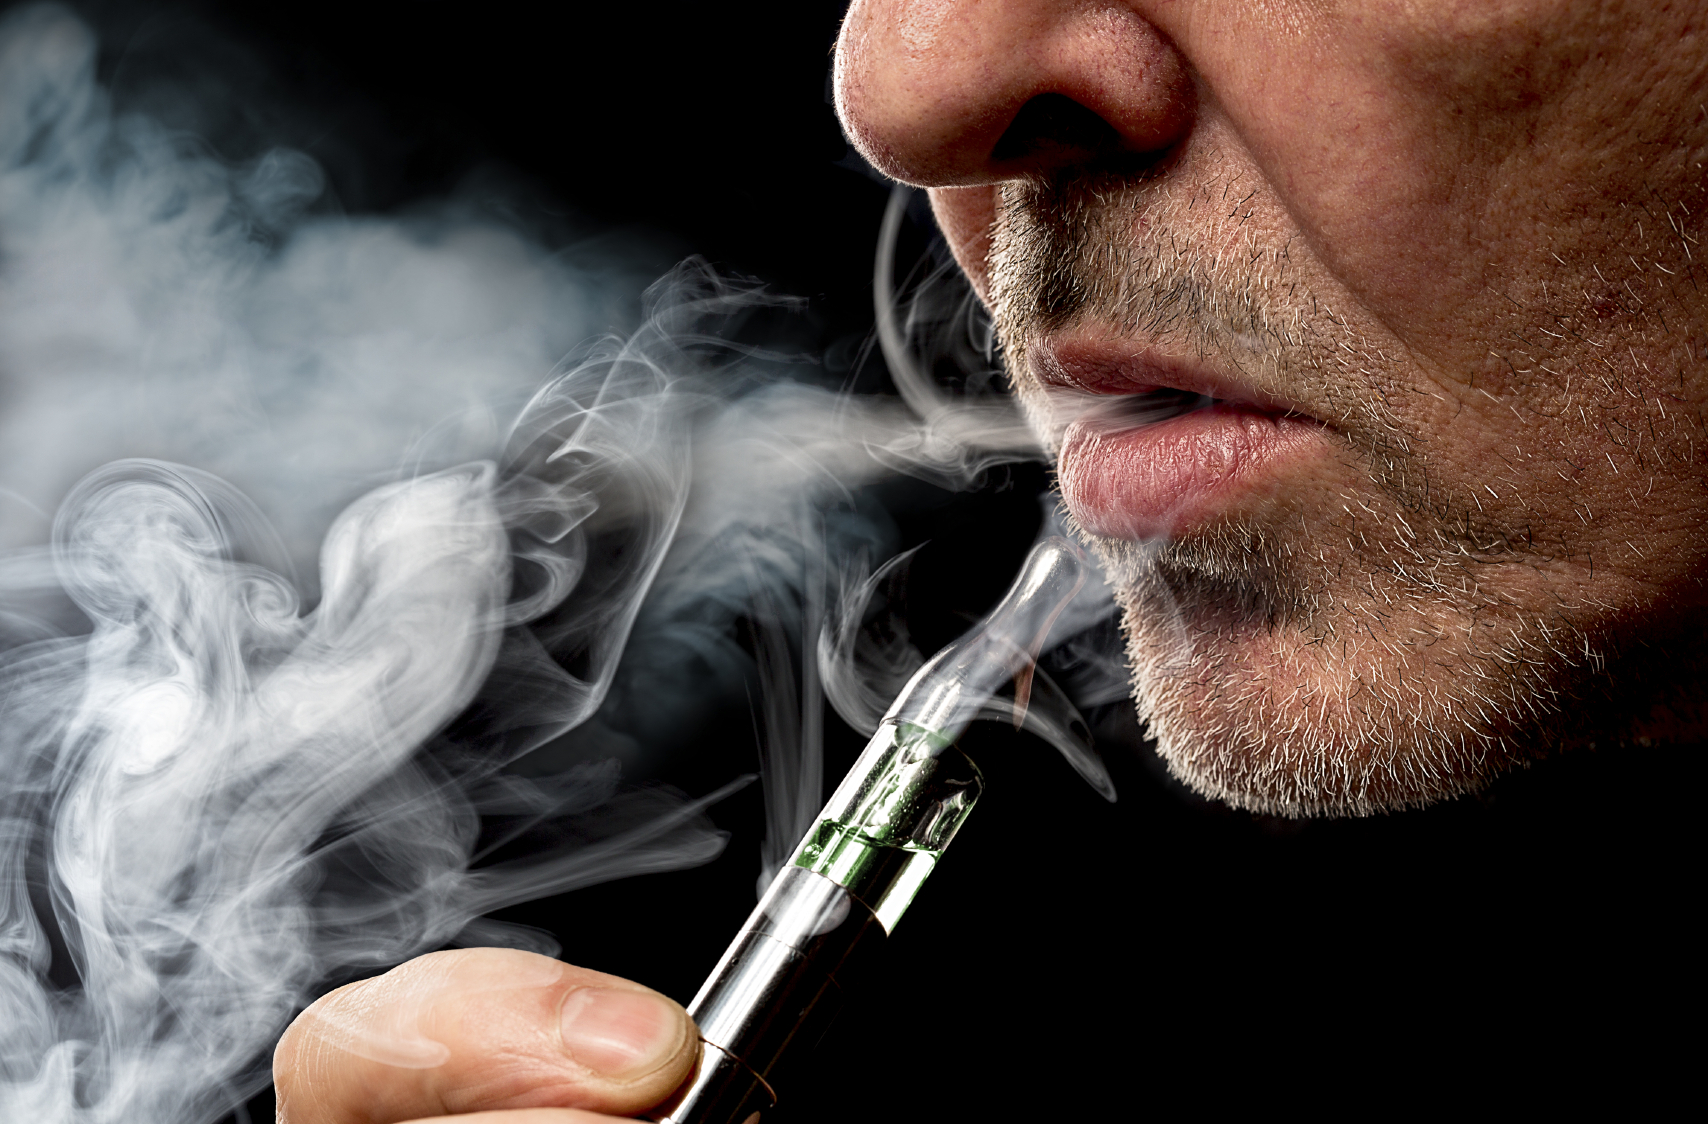 A man smokes an e-cigarette. (stock image)